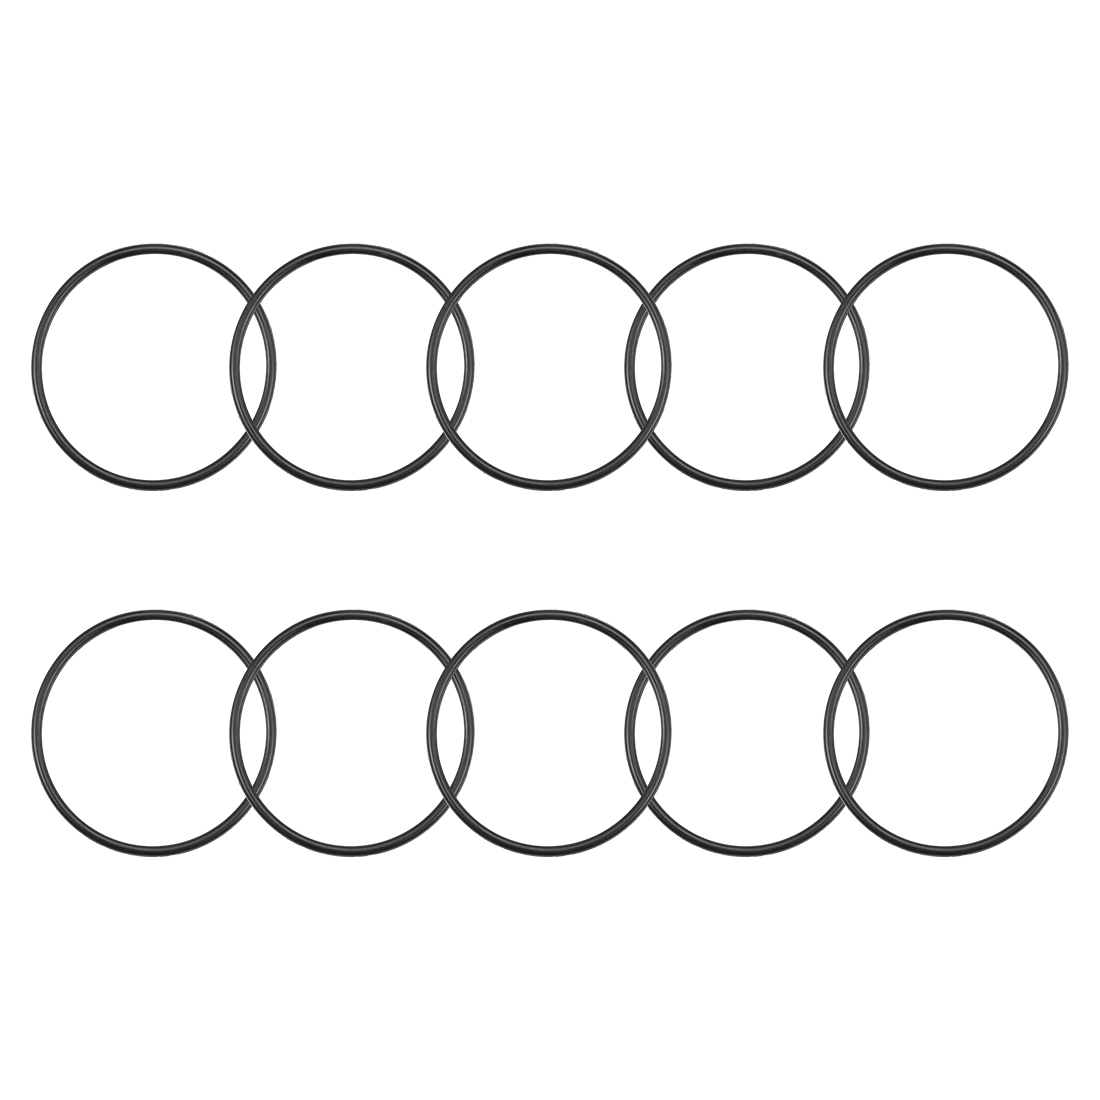 O-Rings Nitrile Rubber 50mm x 55.3mm x 2.65mm Round Seal Gasket 10 Pcs